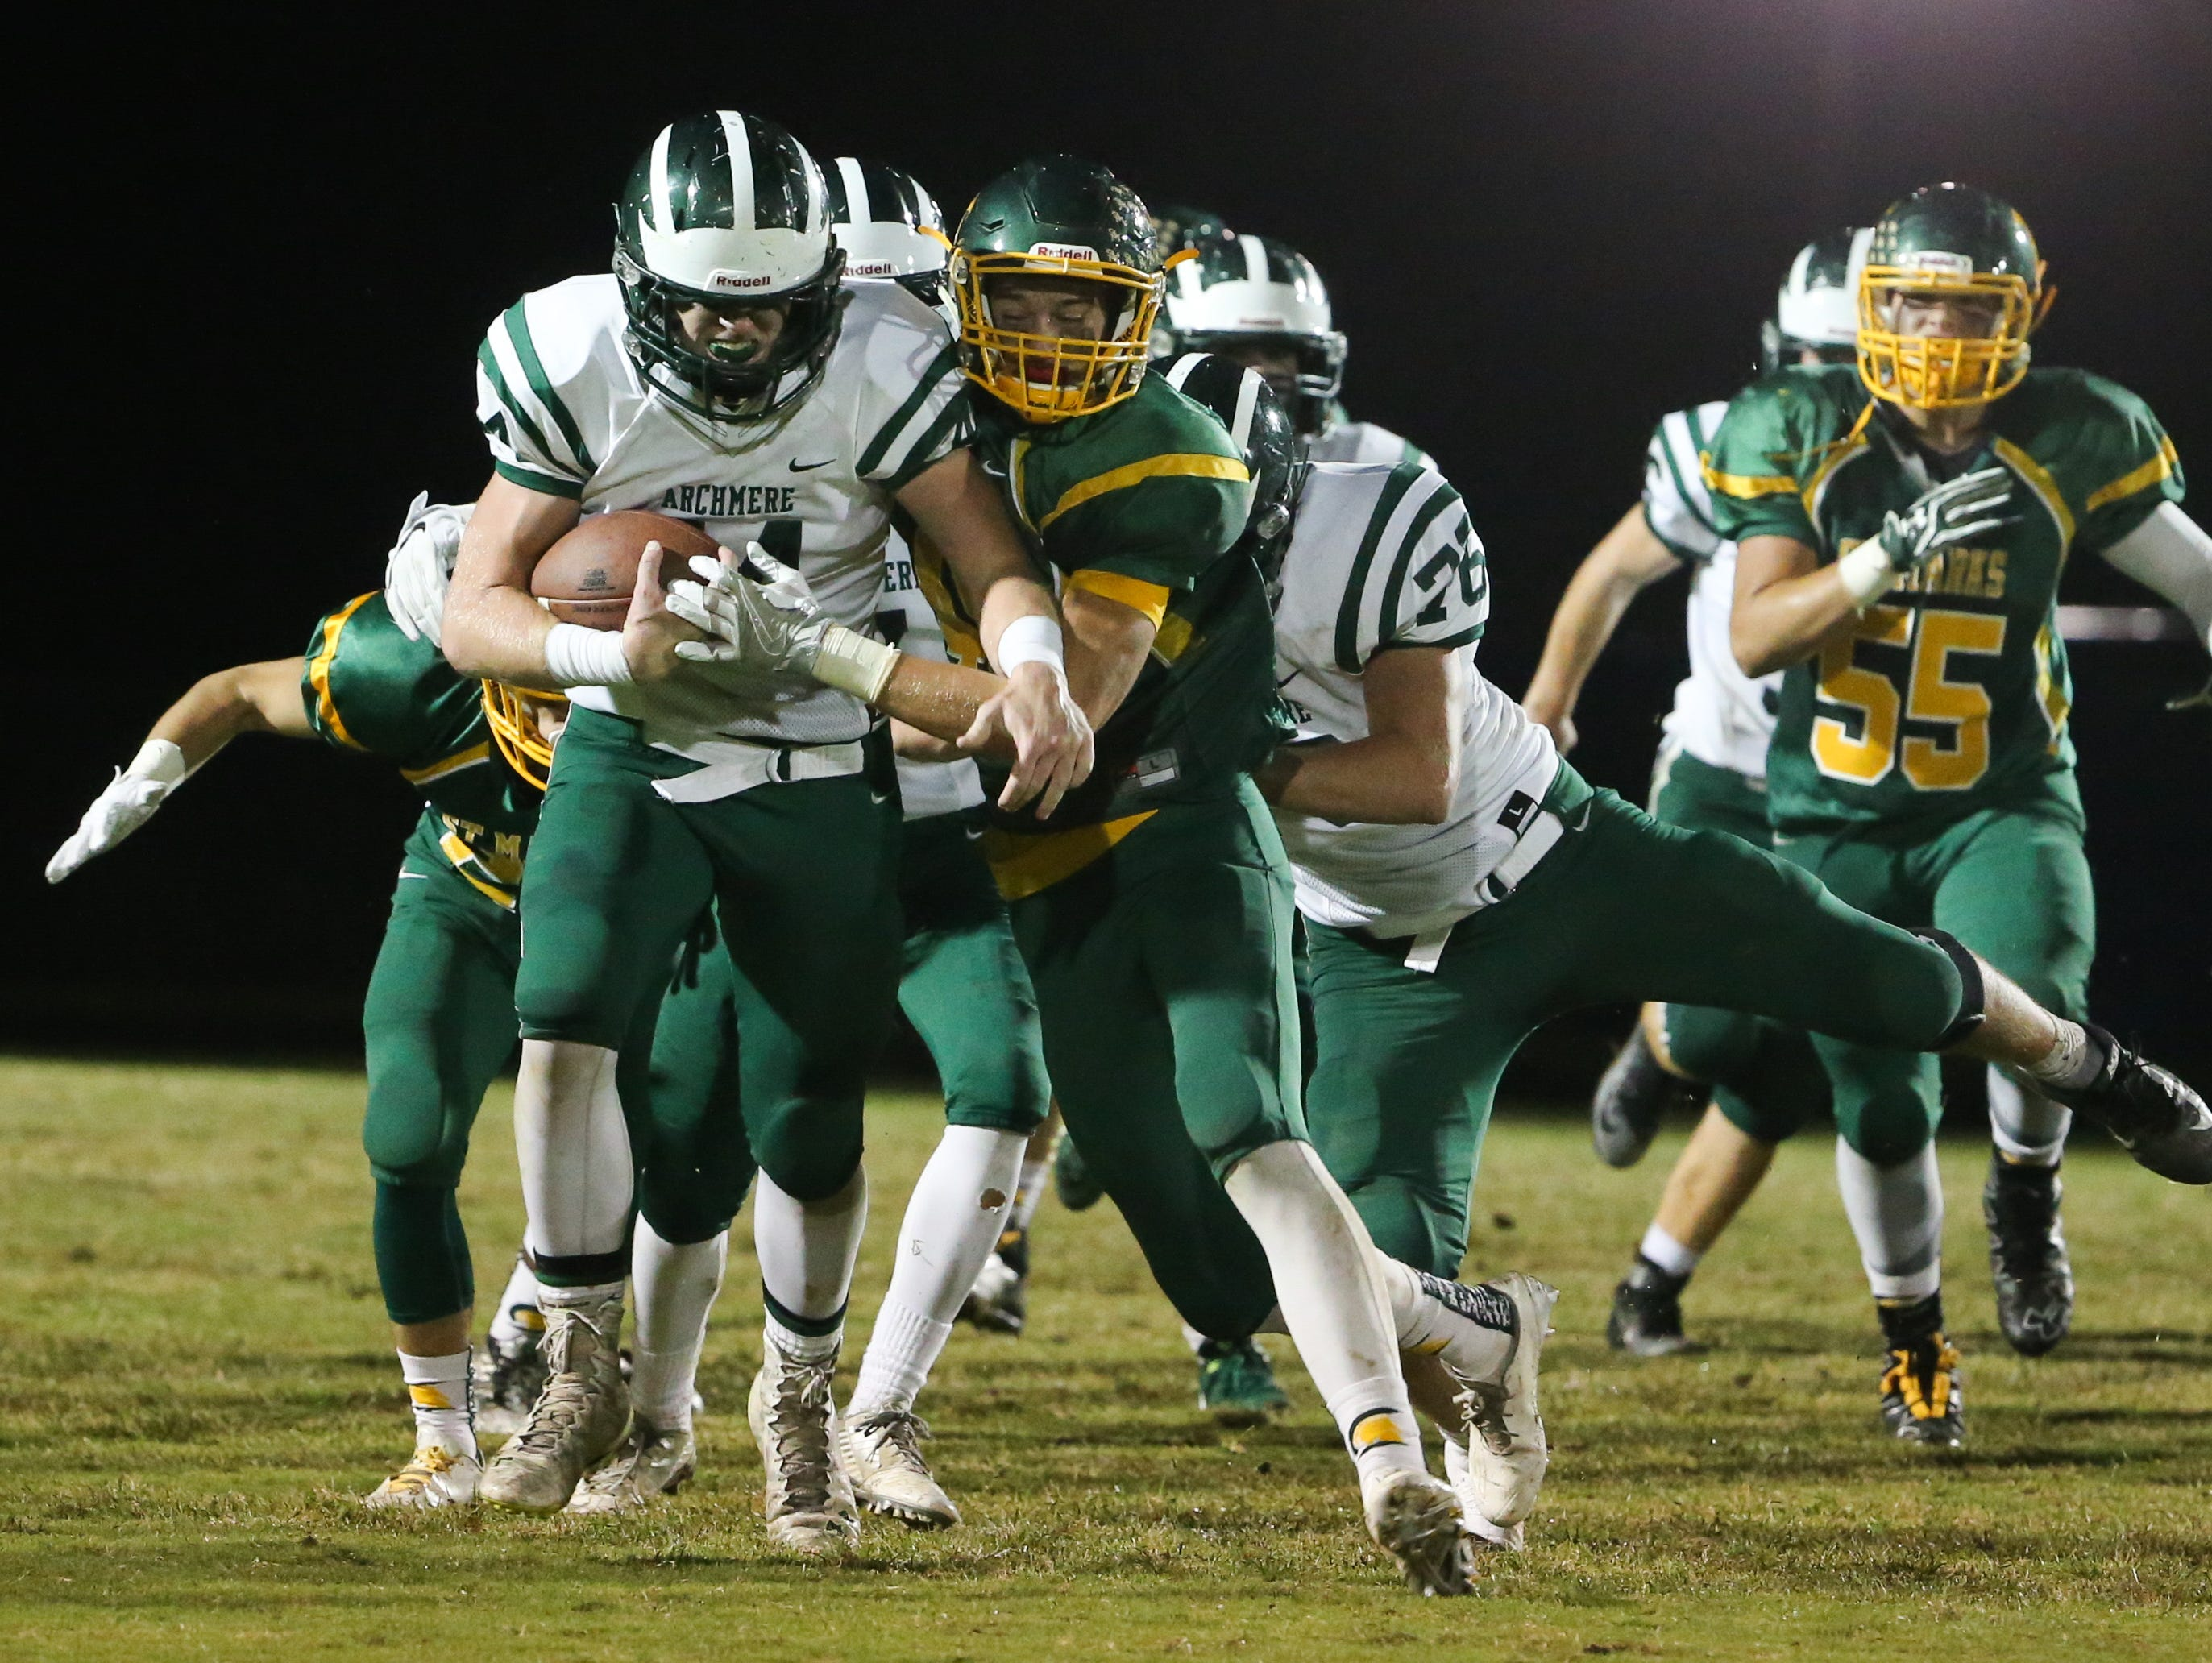 Archmere running back Patrick Udovich is tackled by St. Mark's defensive end David Balint in the second quarter.